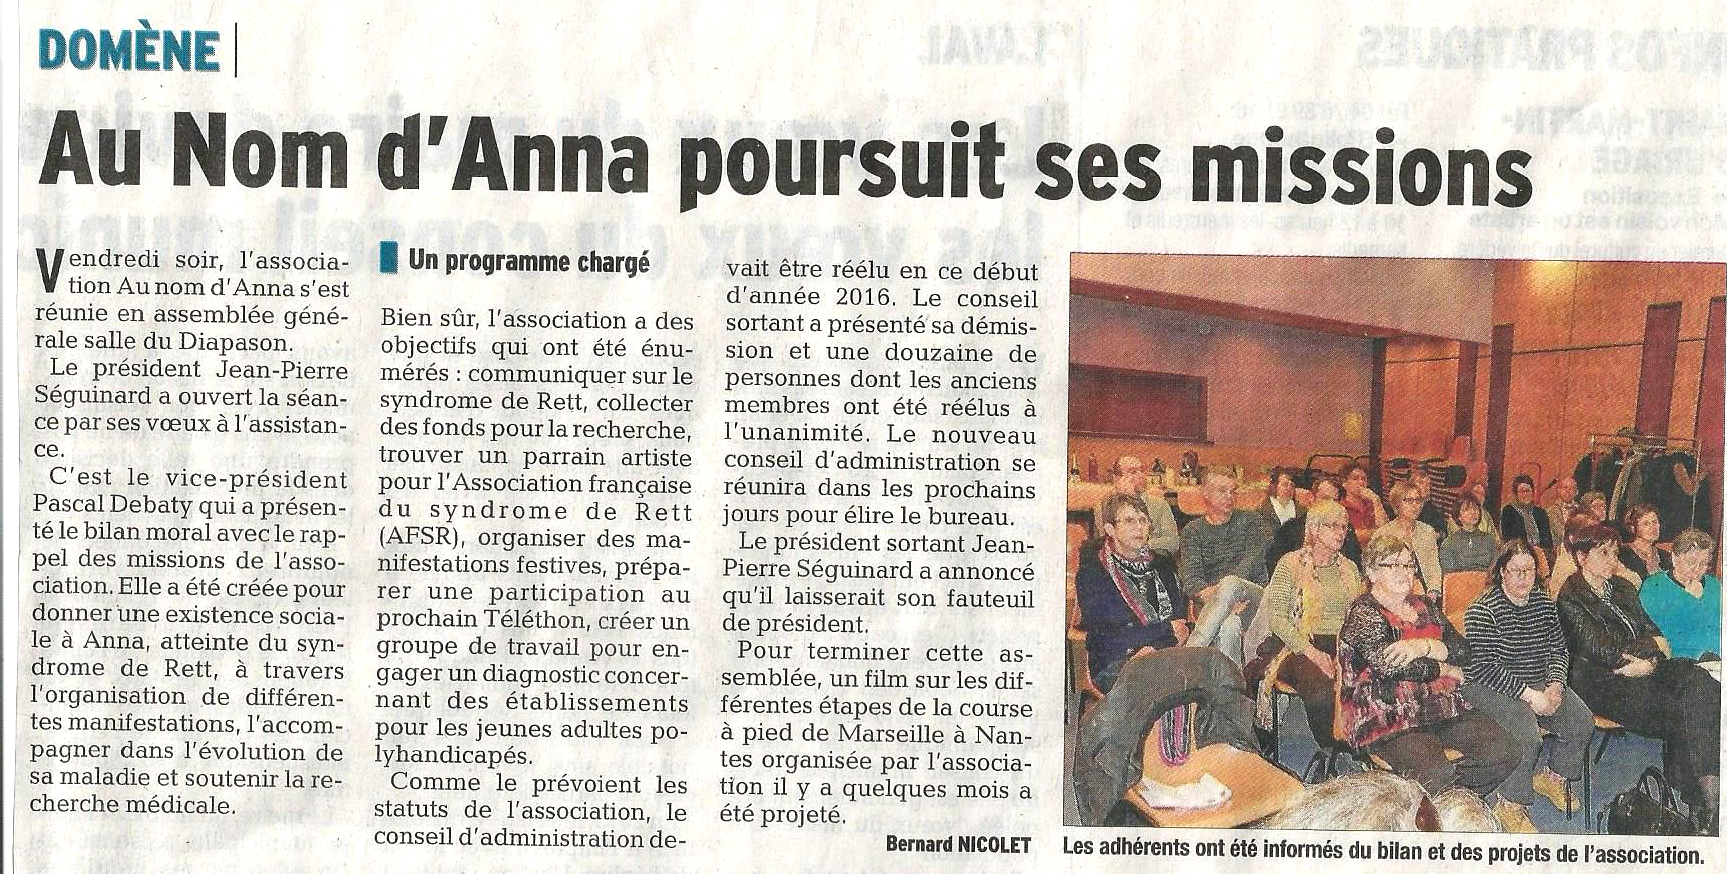 article_DL_AG_AuNom_Anna 002